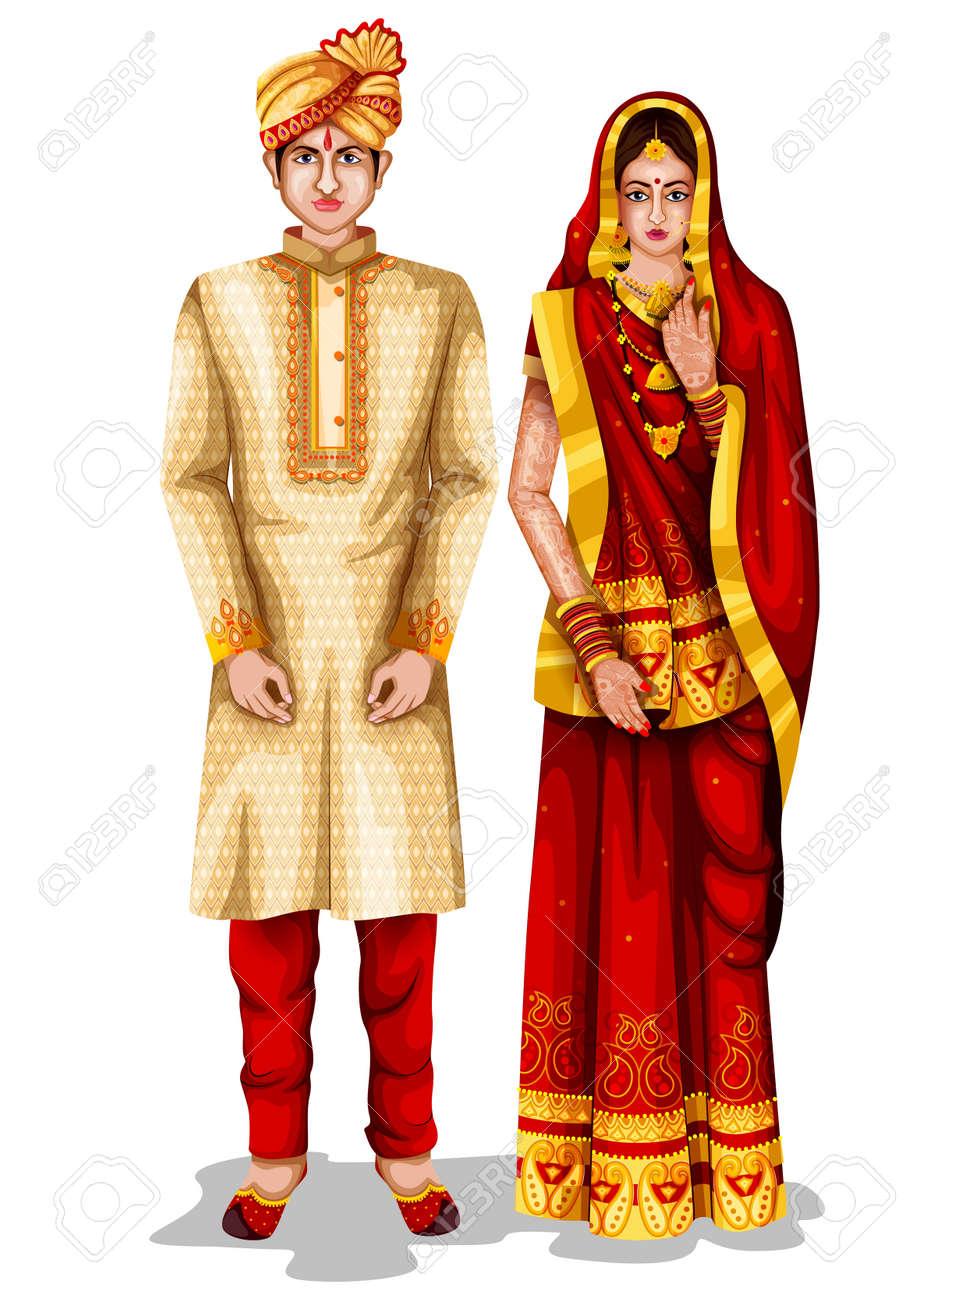 a98b0bc469 easy to edit vector illustration of Bihari wedding couple in traditional  costume of Bihar, India